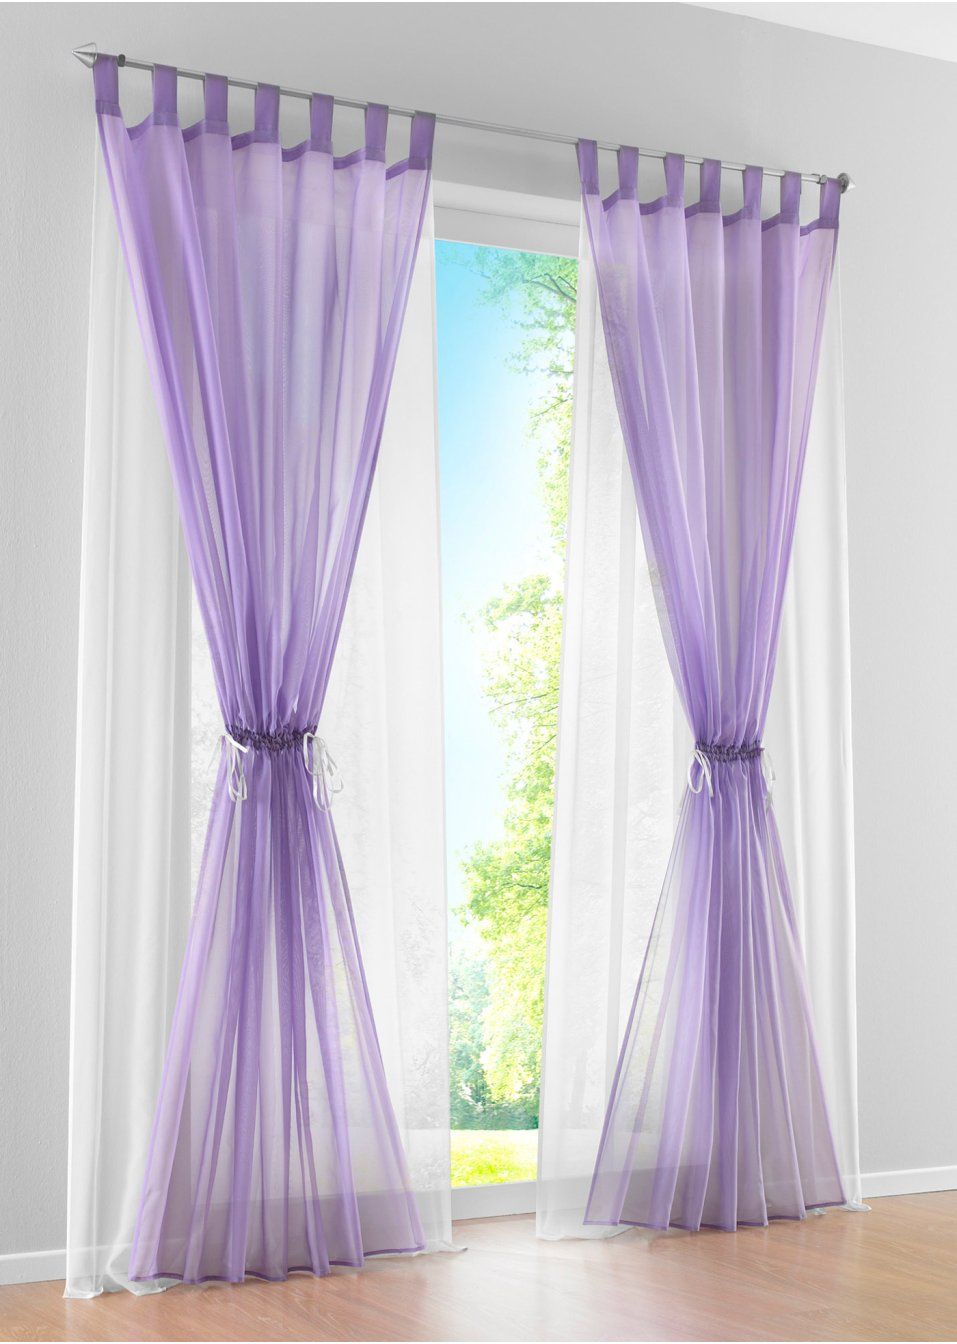 Rustic Solid Color Double Layer Curtains For The Bedroom, Voile Can  Customized,Fresh Candy Color Purple Green White Orange